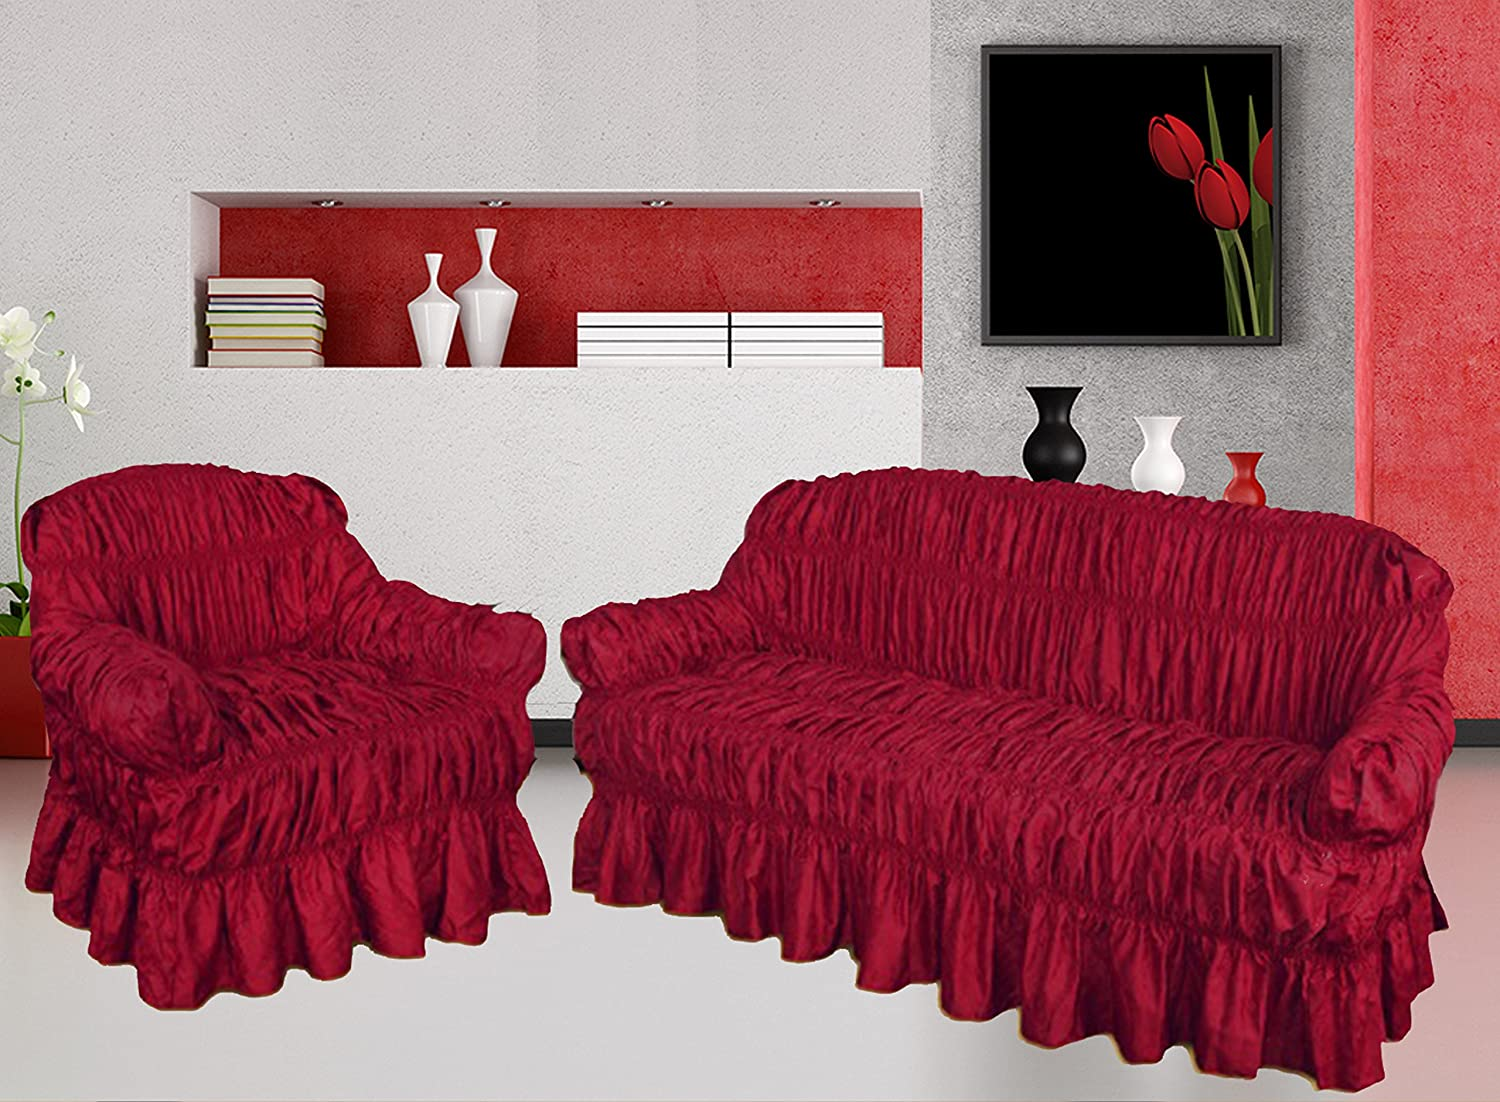 NAKUK HOME COLLECTION Sofa Cover 3 2 1 Seater Jacquard - Universal Elastic Fitting (3 Seater, RED WINE) HOME COMFORTS